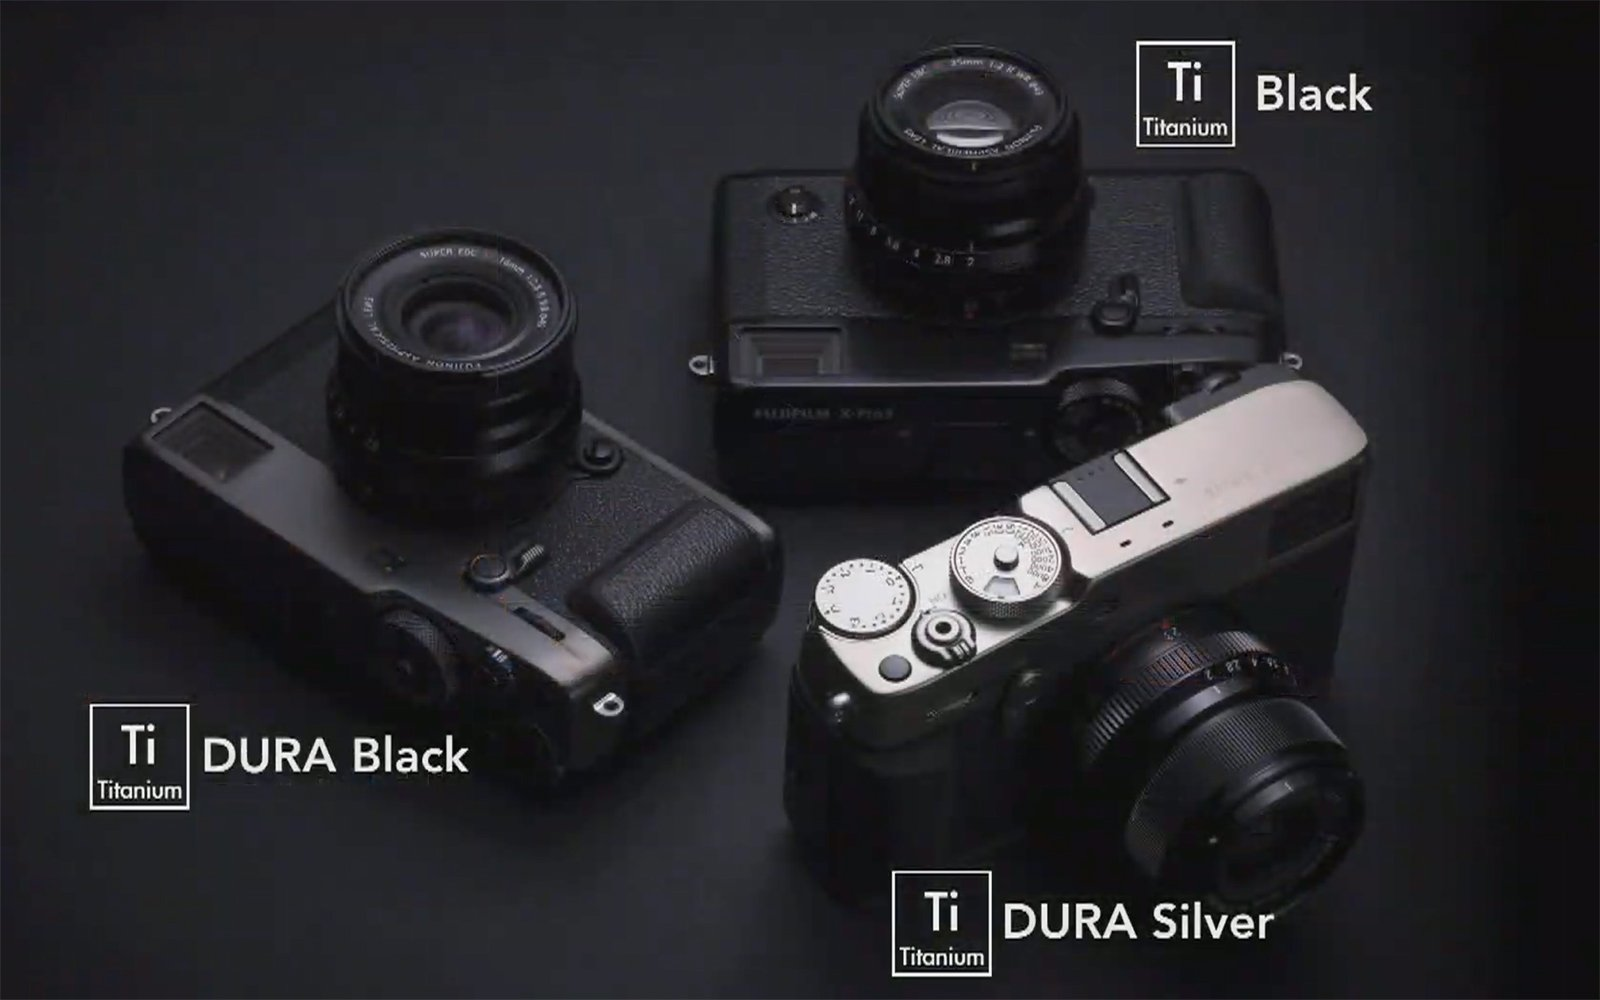 Fujifilm Reveals X-Pro3 with Titanium Body, Hidden LCD and New Film Simulation